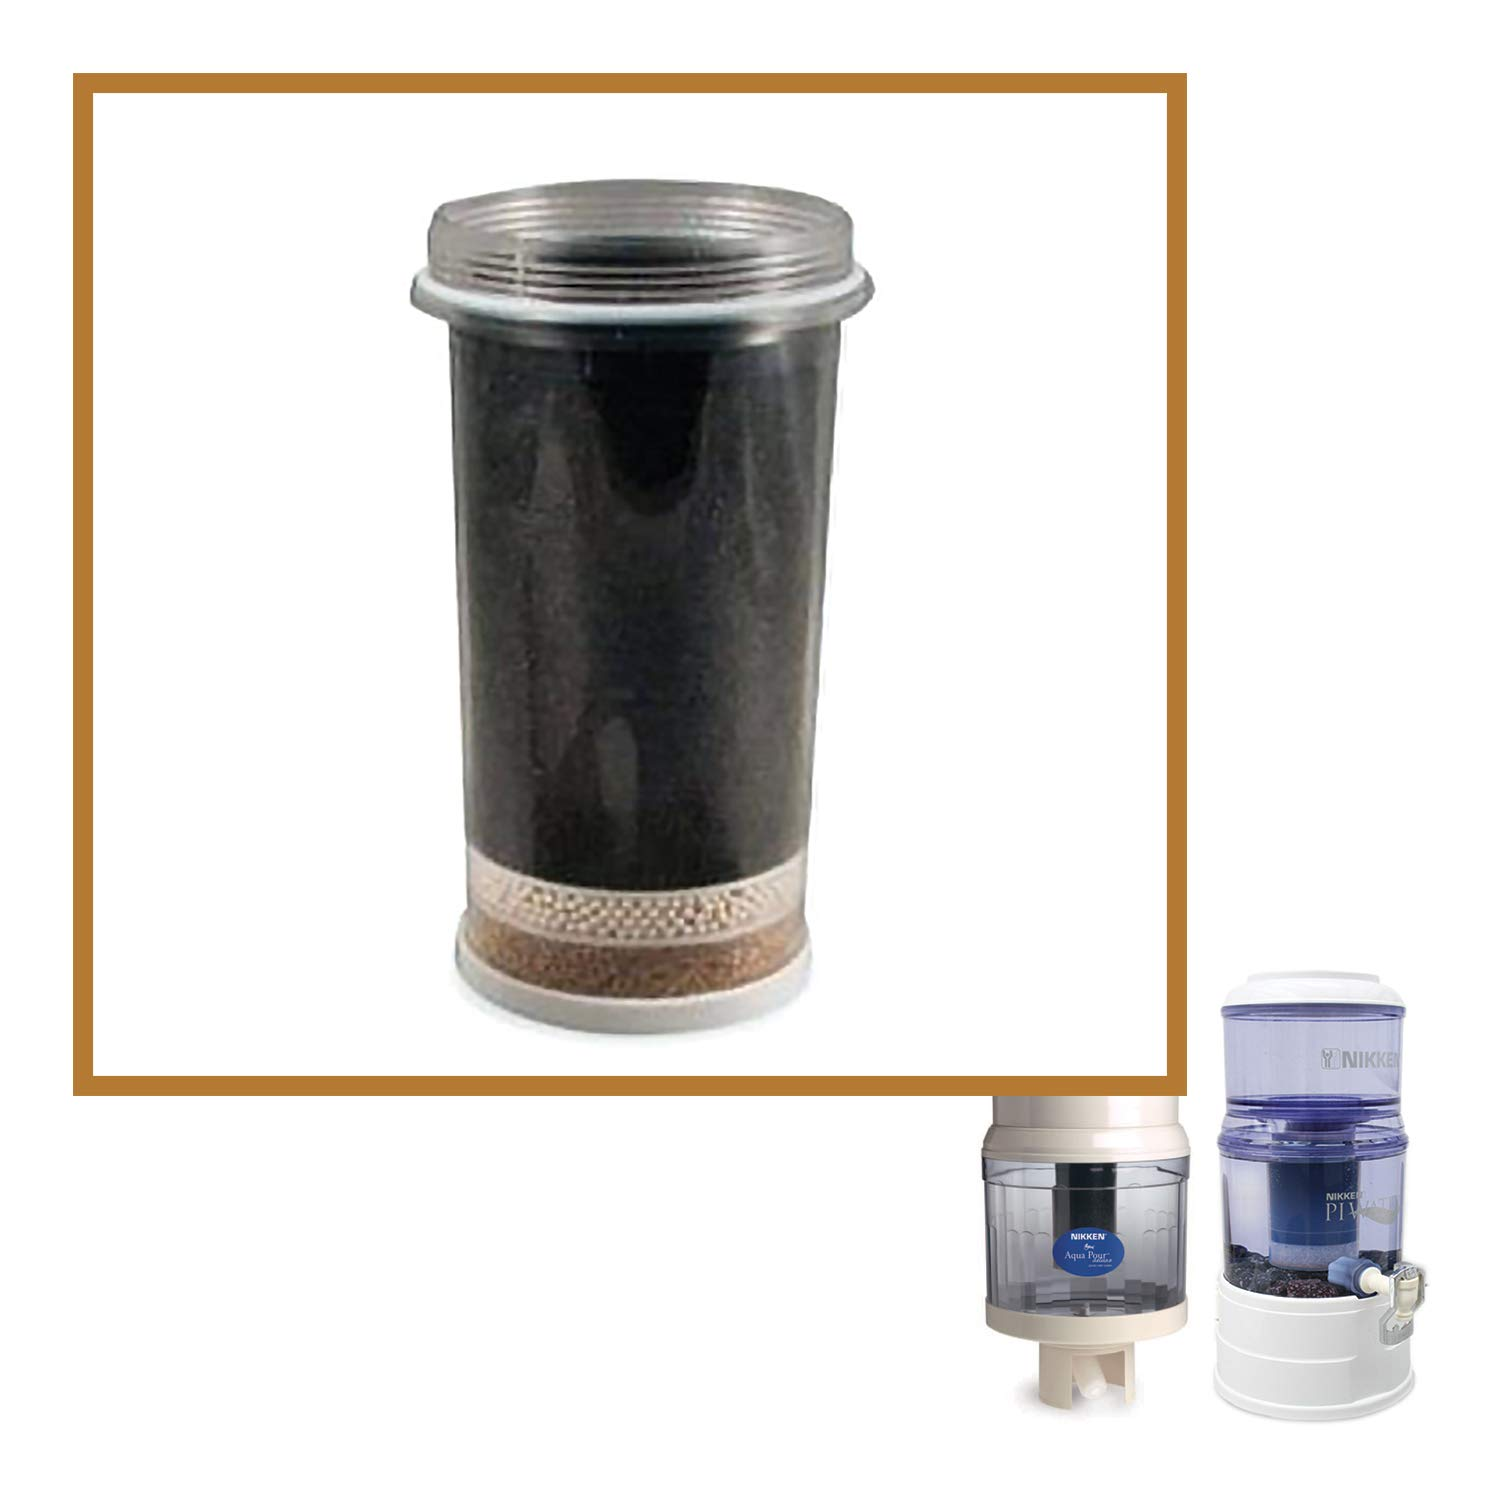 Nikken Aqua Pour 1 Filter Cartridge - 1361, Advanced Replacement for Gravity Water Filter Purifier System 1360, PiMag Water System, Produce Alkaline Water, Benzene, Radon and Solvents - Filtro De Aqua by Nikken